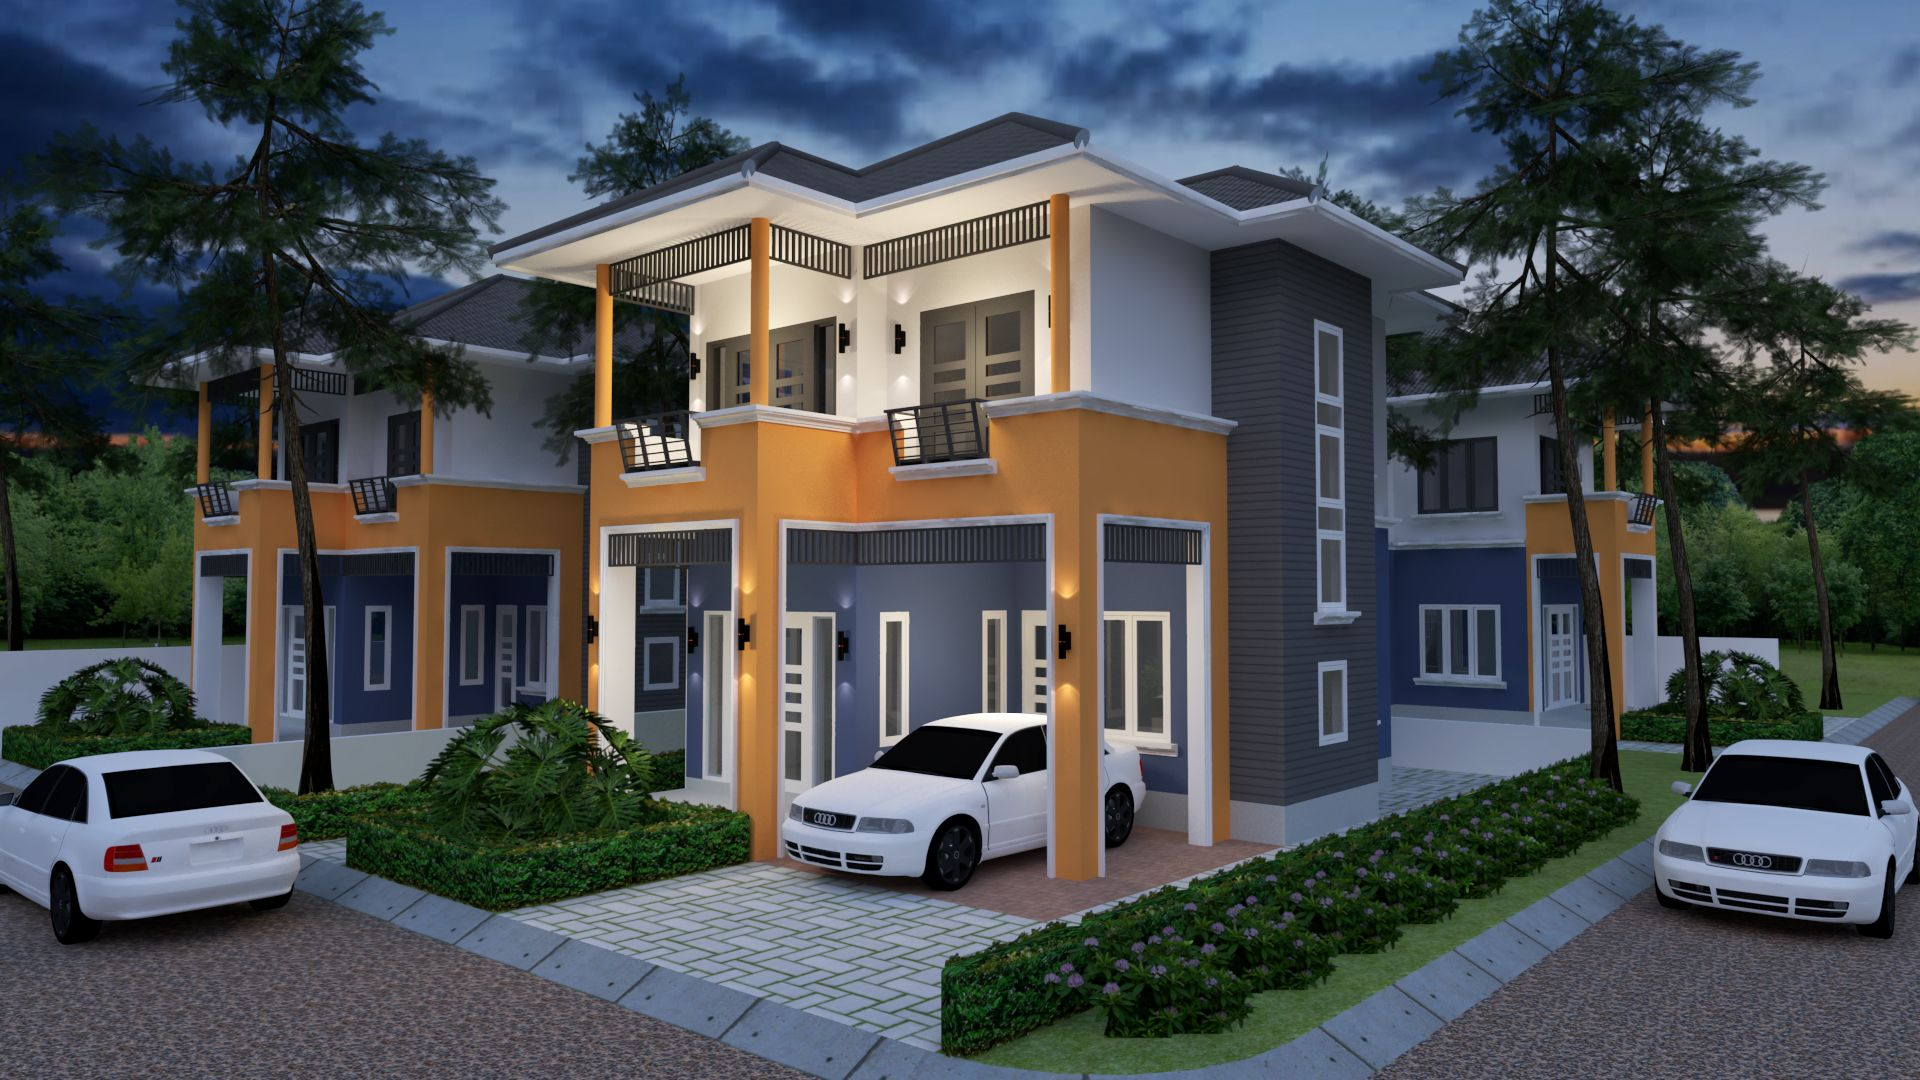 Home Plan 6x9.5m with 3 Bedrooms | Simple house design, House ...